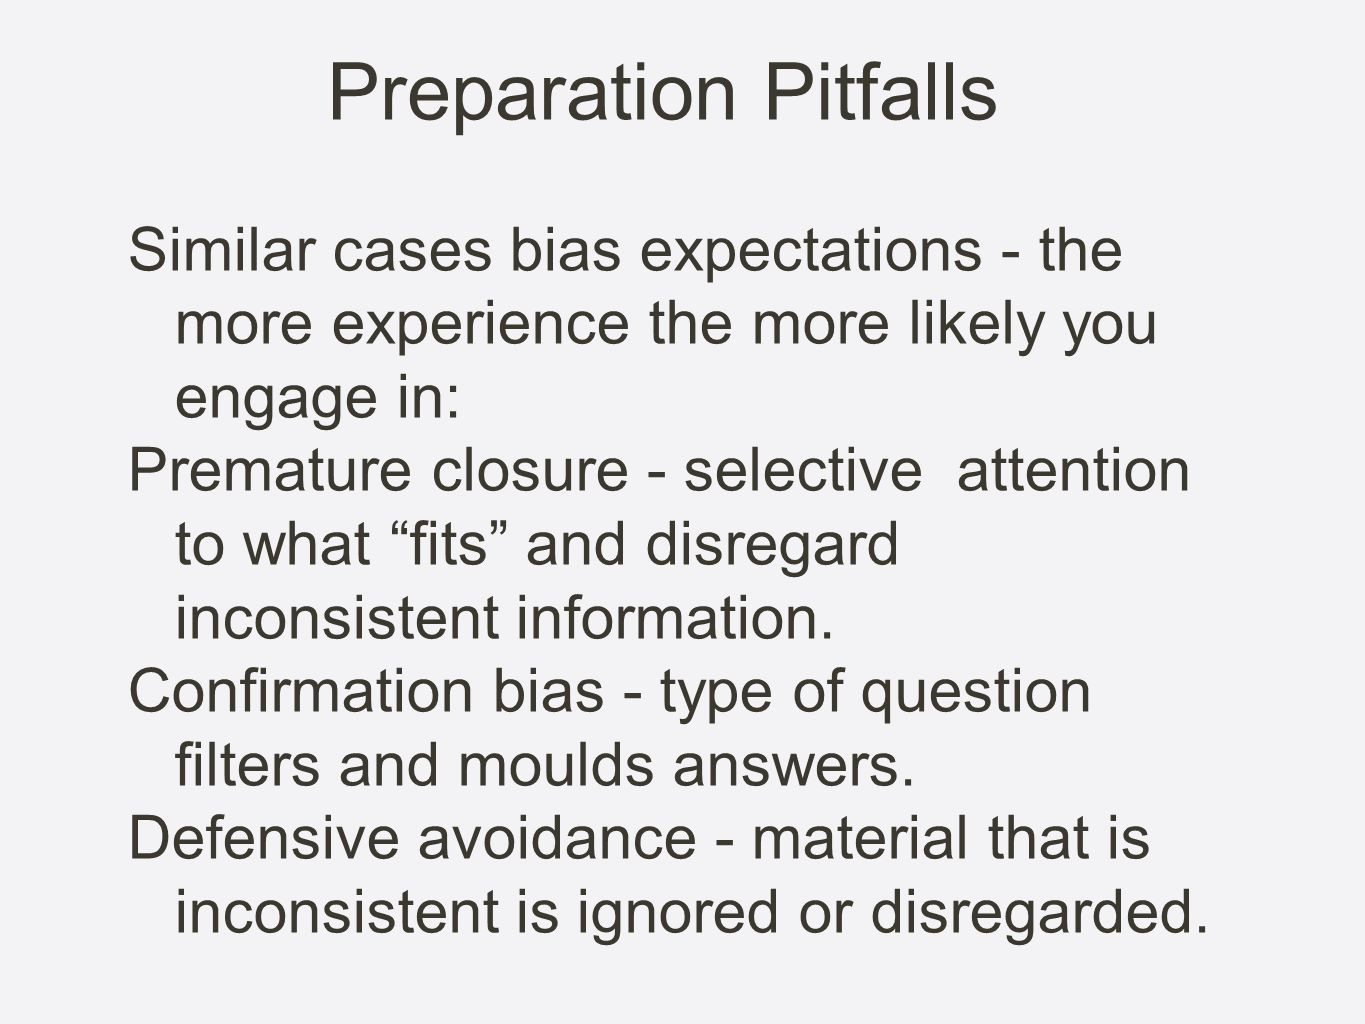 Preparation PitfallsSimilar cases bias expectations - the more experience the more likely you engage in: